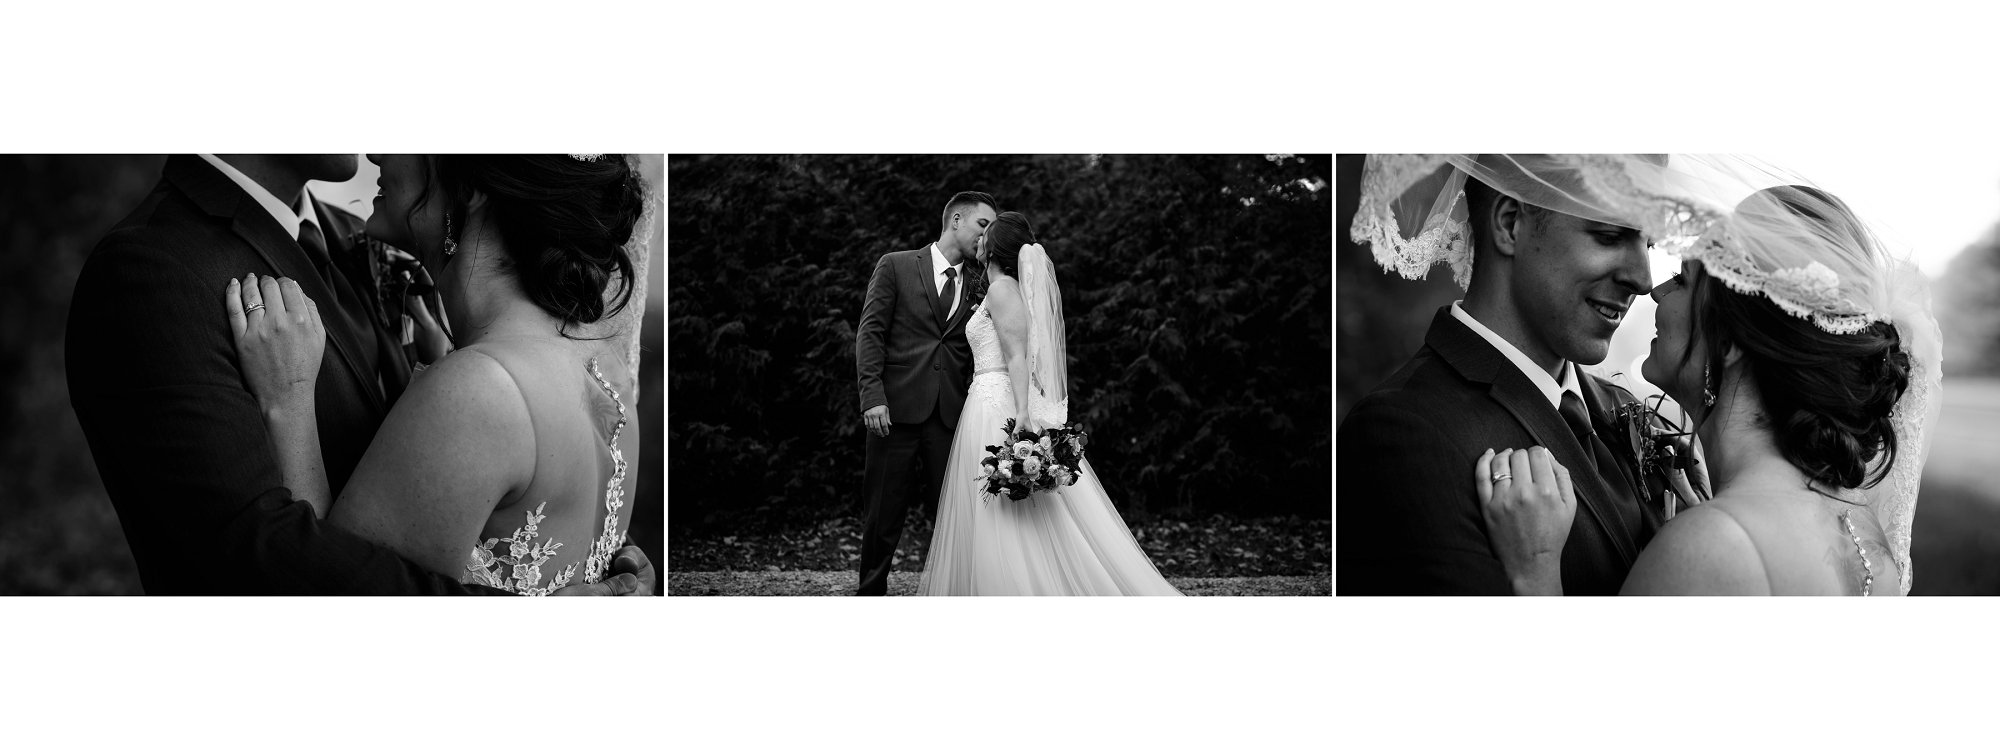 black and white wedding photo album